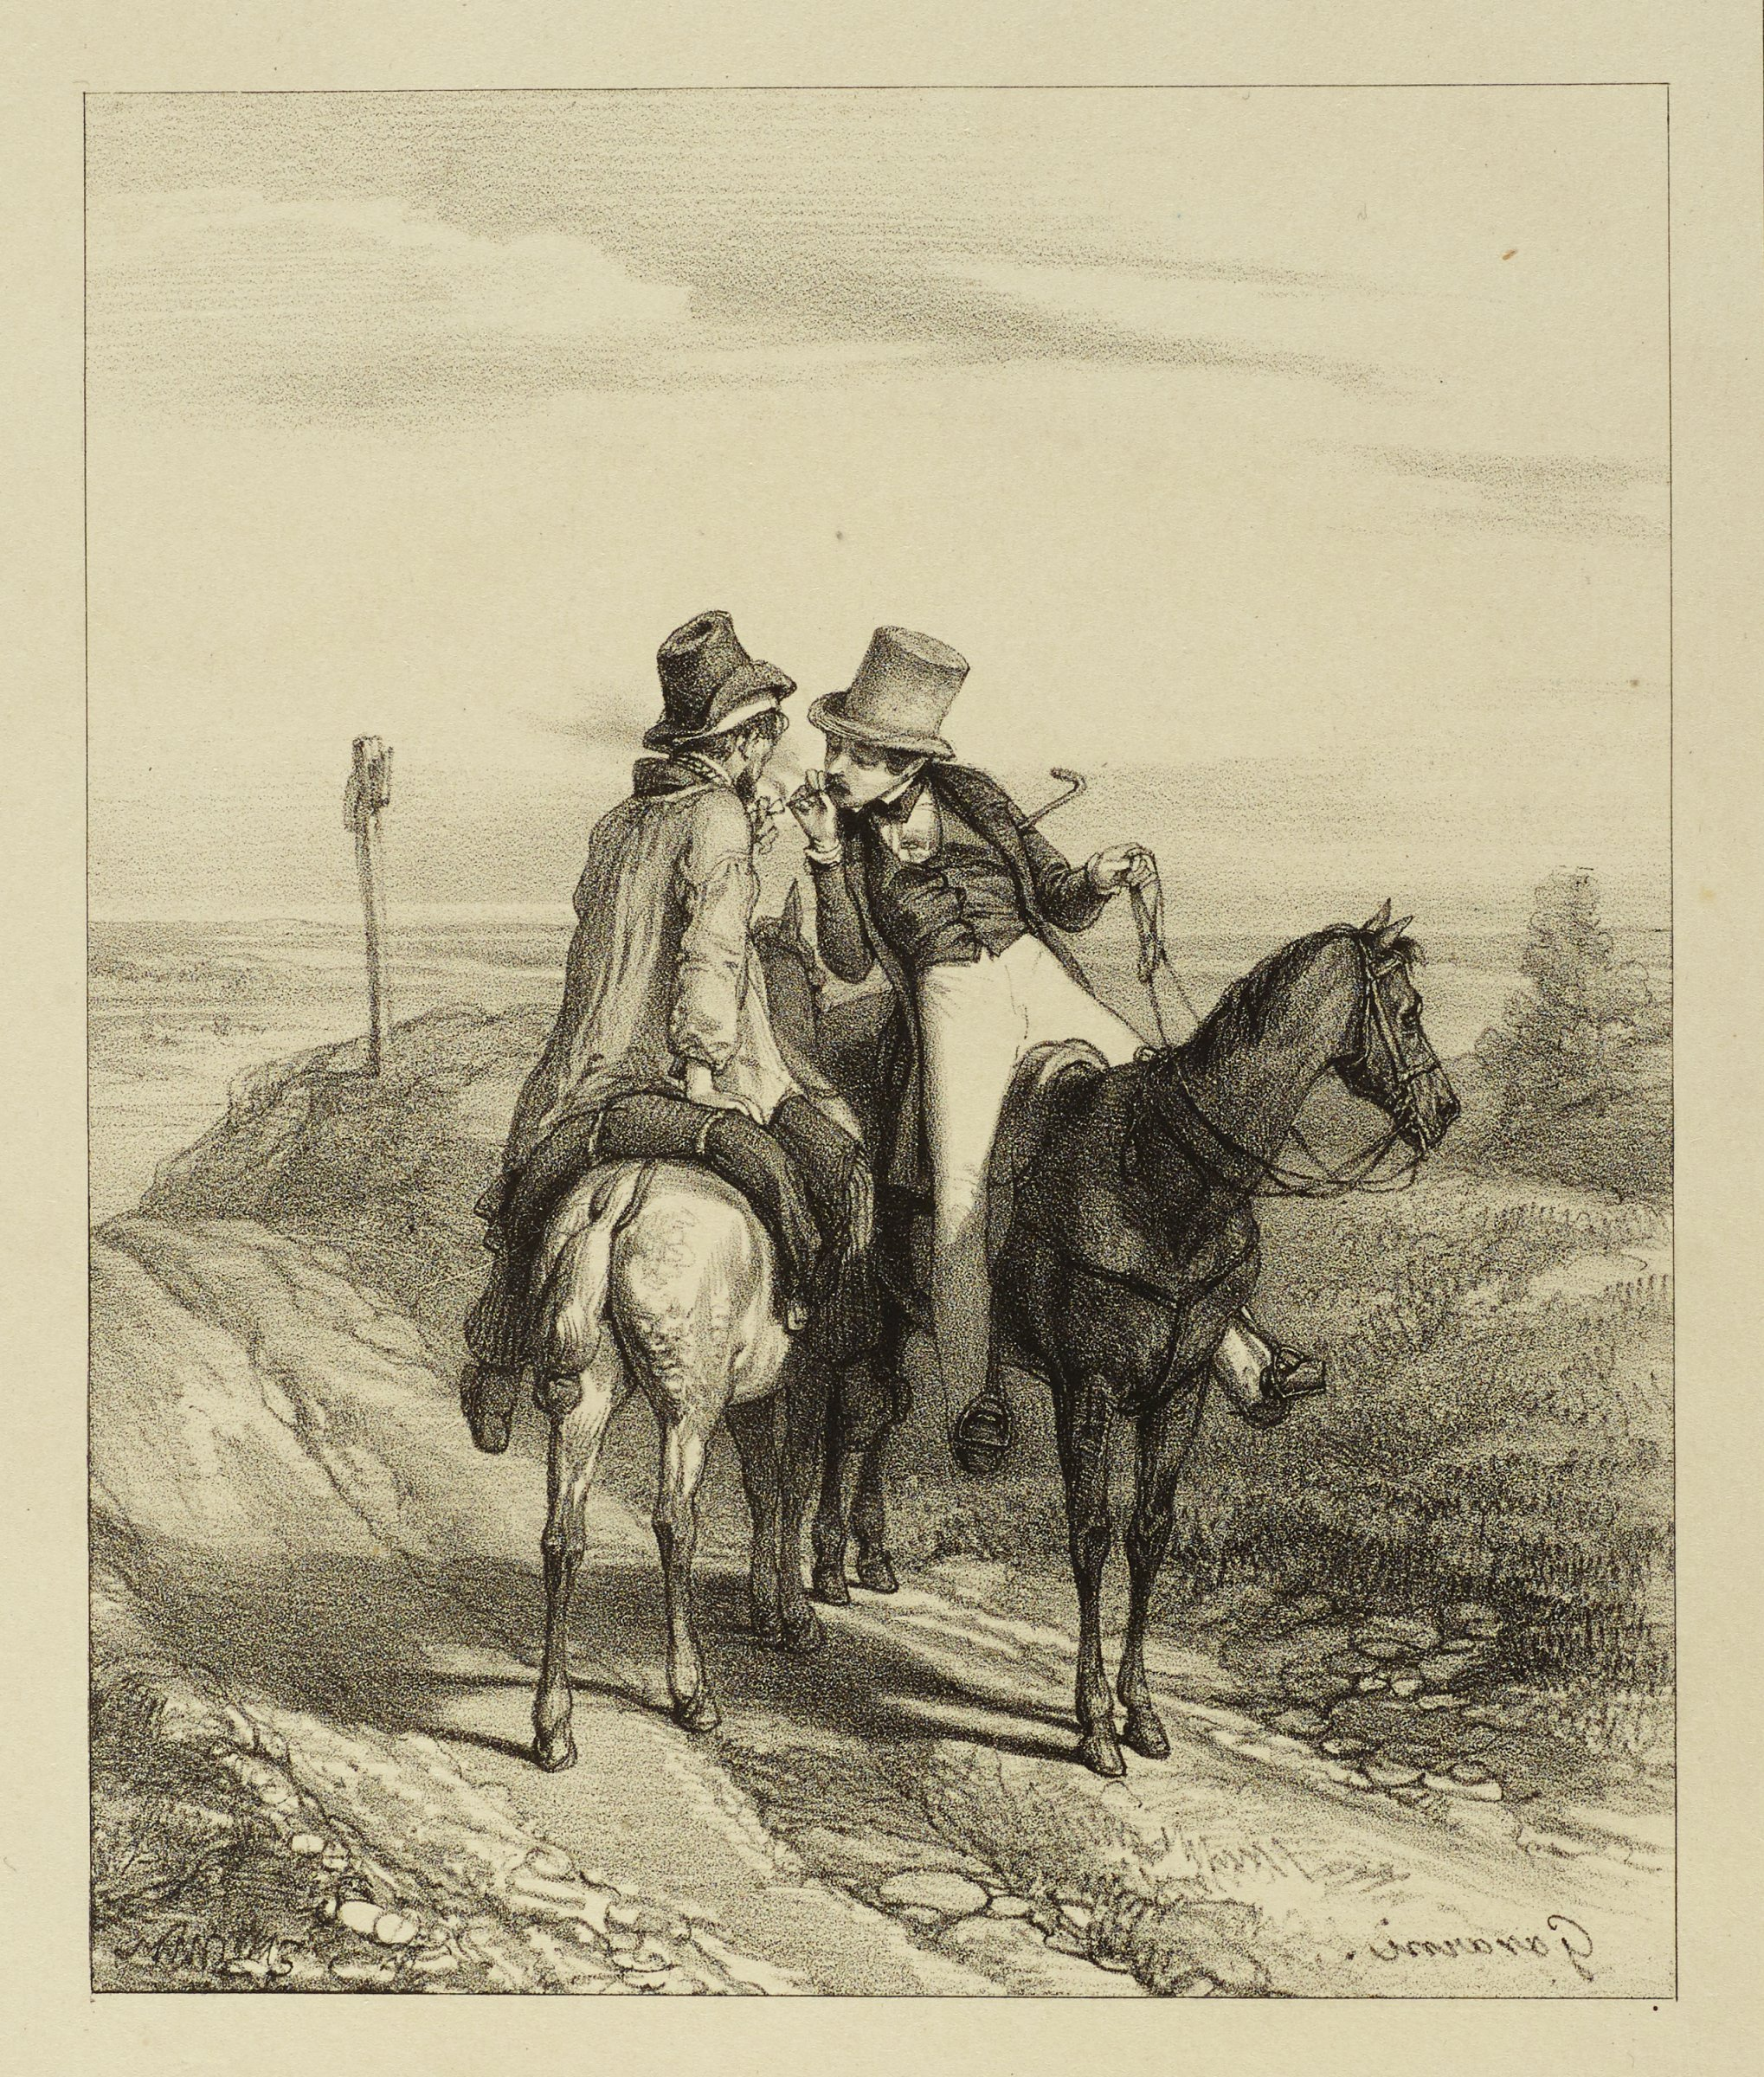 Two gentlemen on horses that are traveling in opposite directions stop in the middle of a road. One man offers a light to the other.